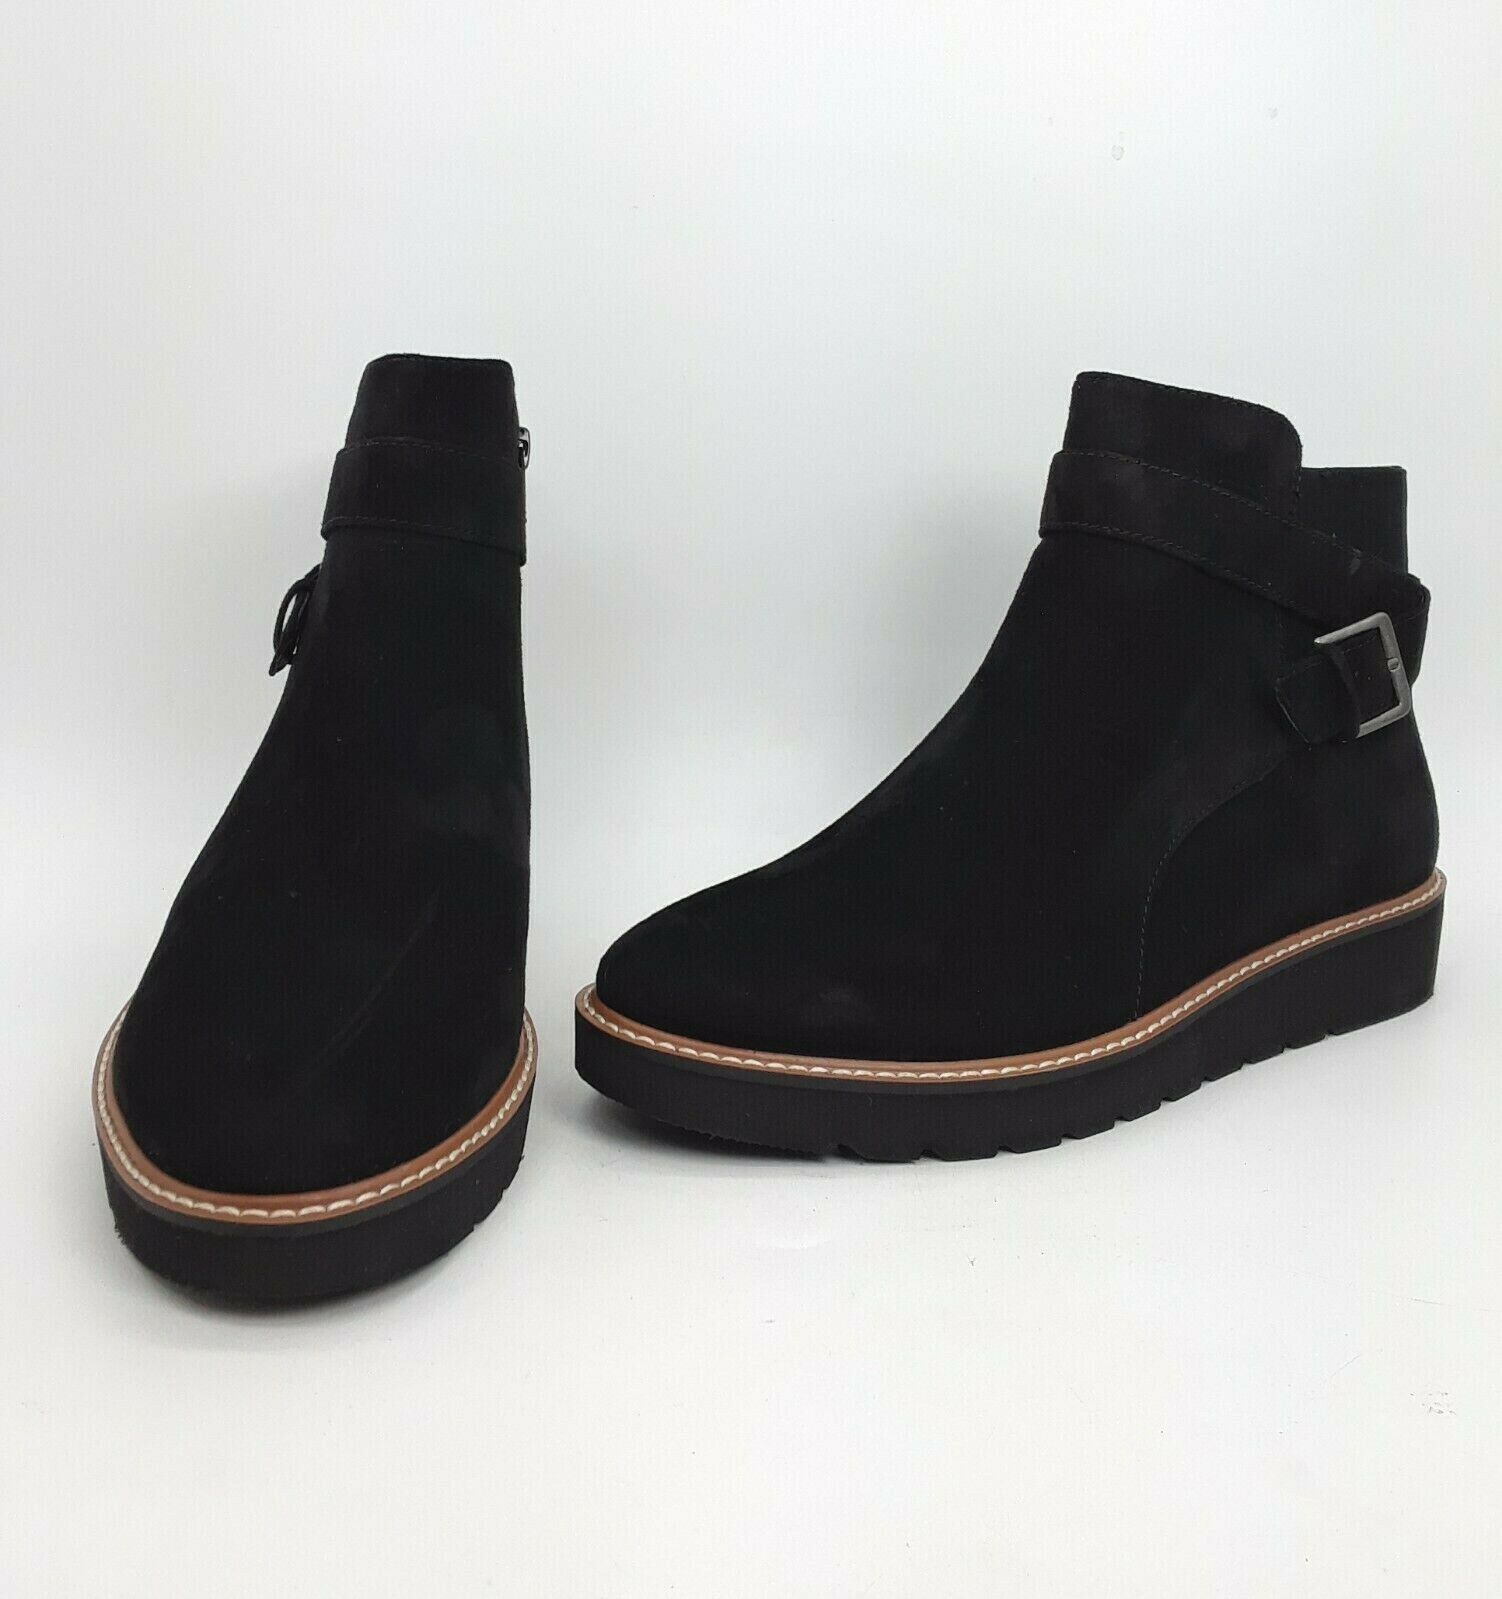 Naturalizer Aster Woman Shoes Boot Color Black Size 7.5 W